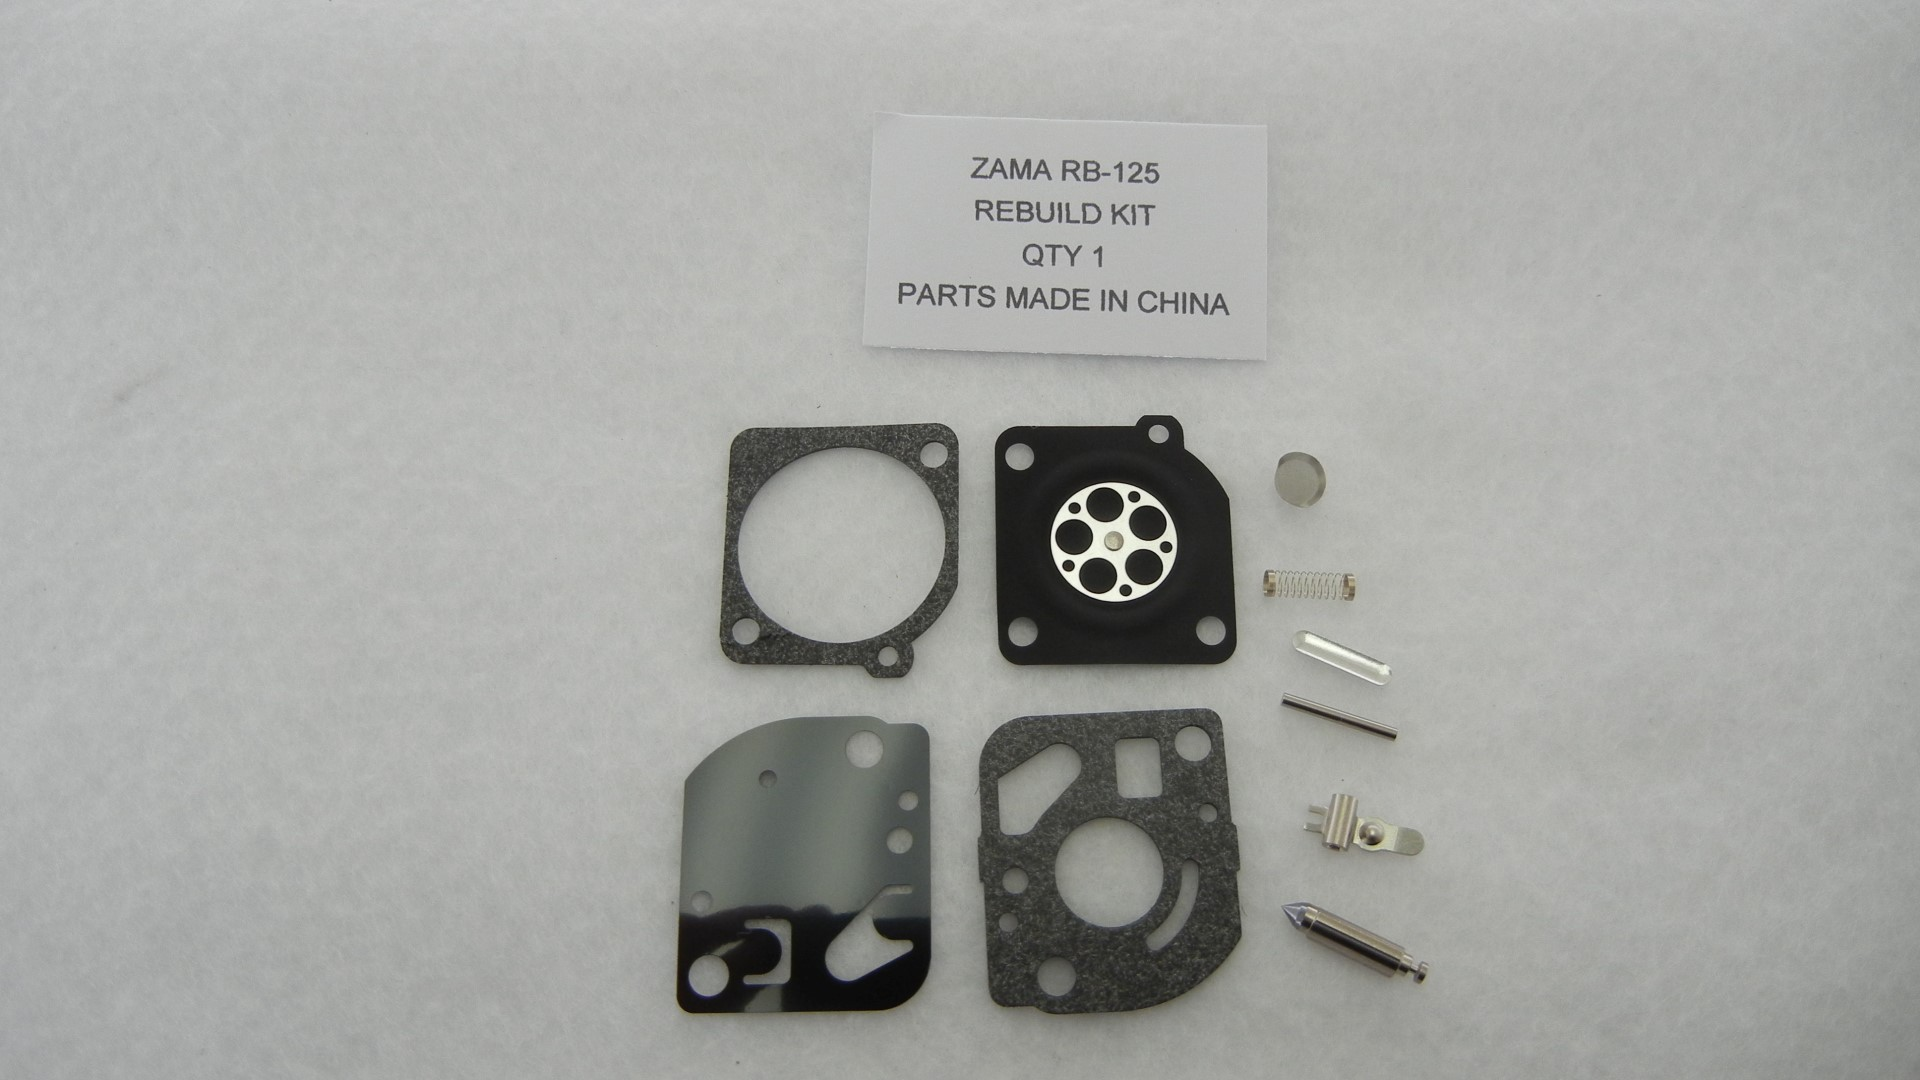 Provenpart RB-125 carburetor rebuild kit for Zama C1U-K78